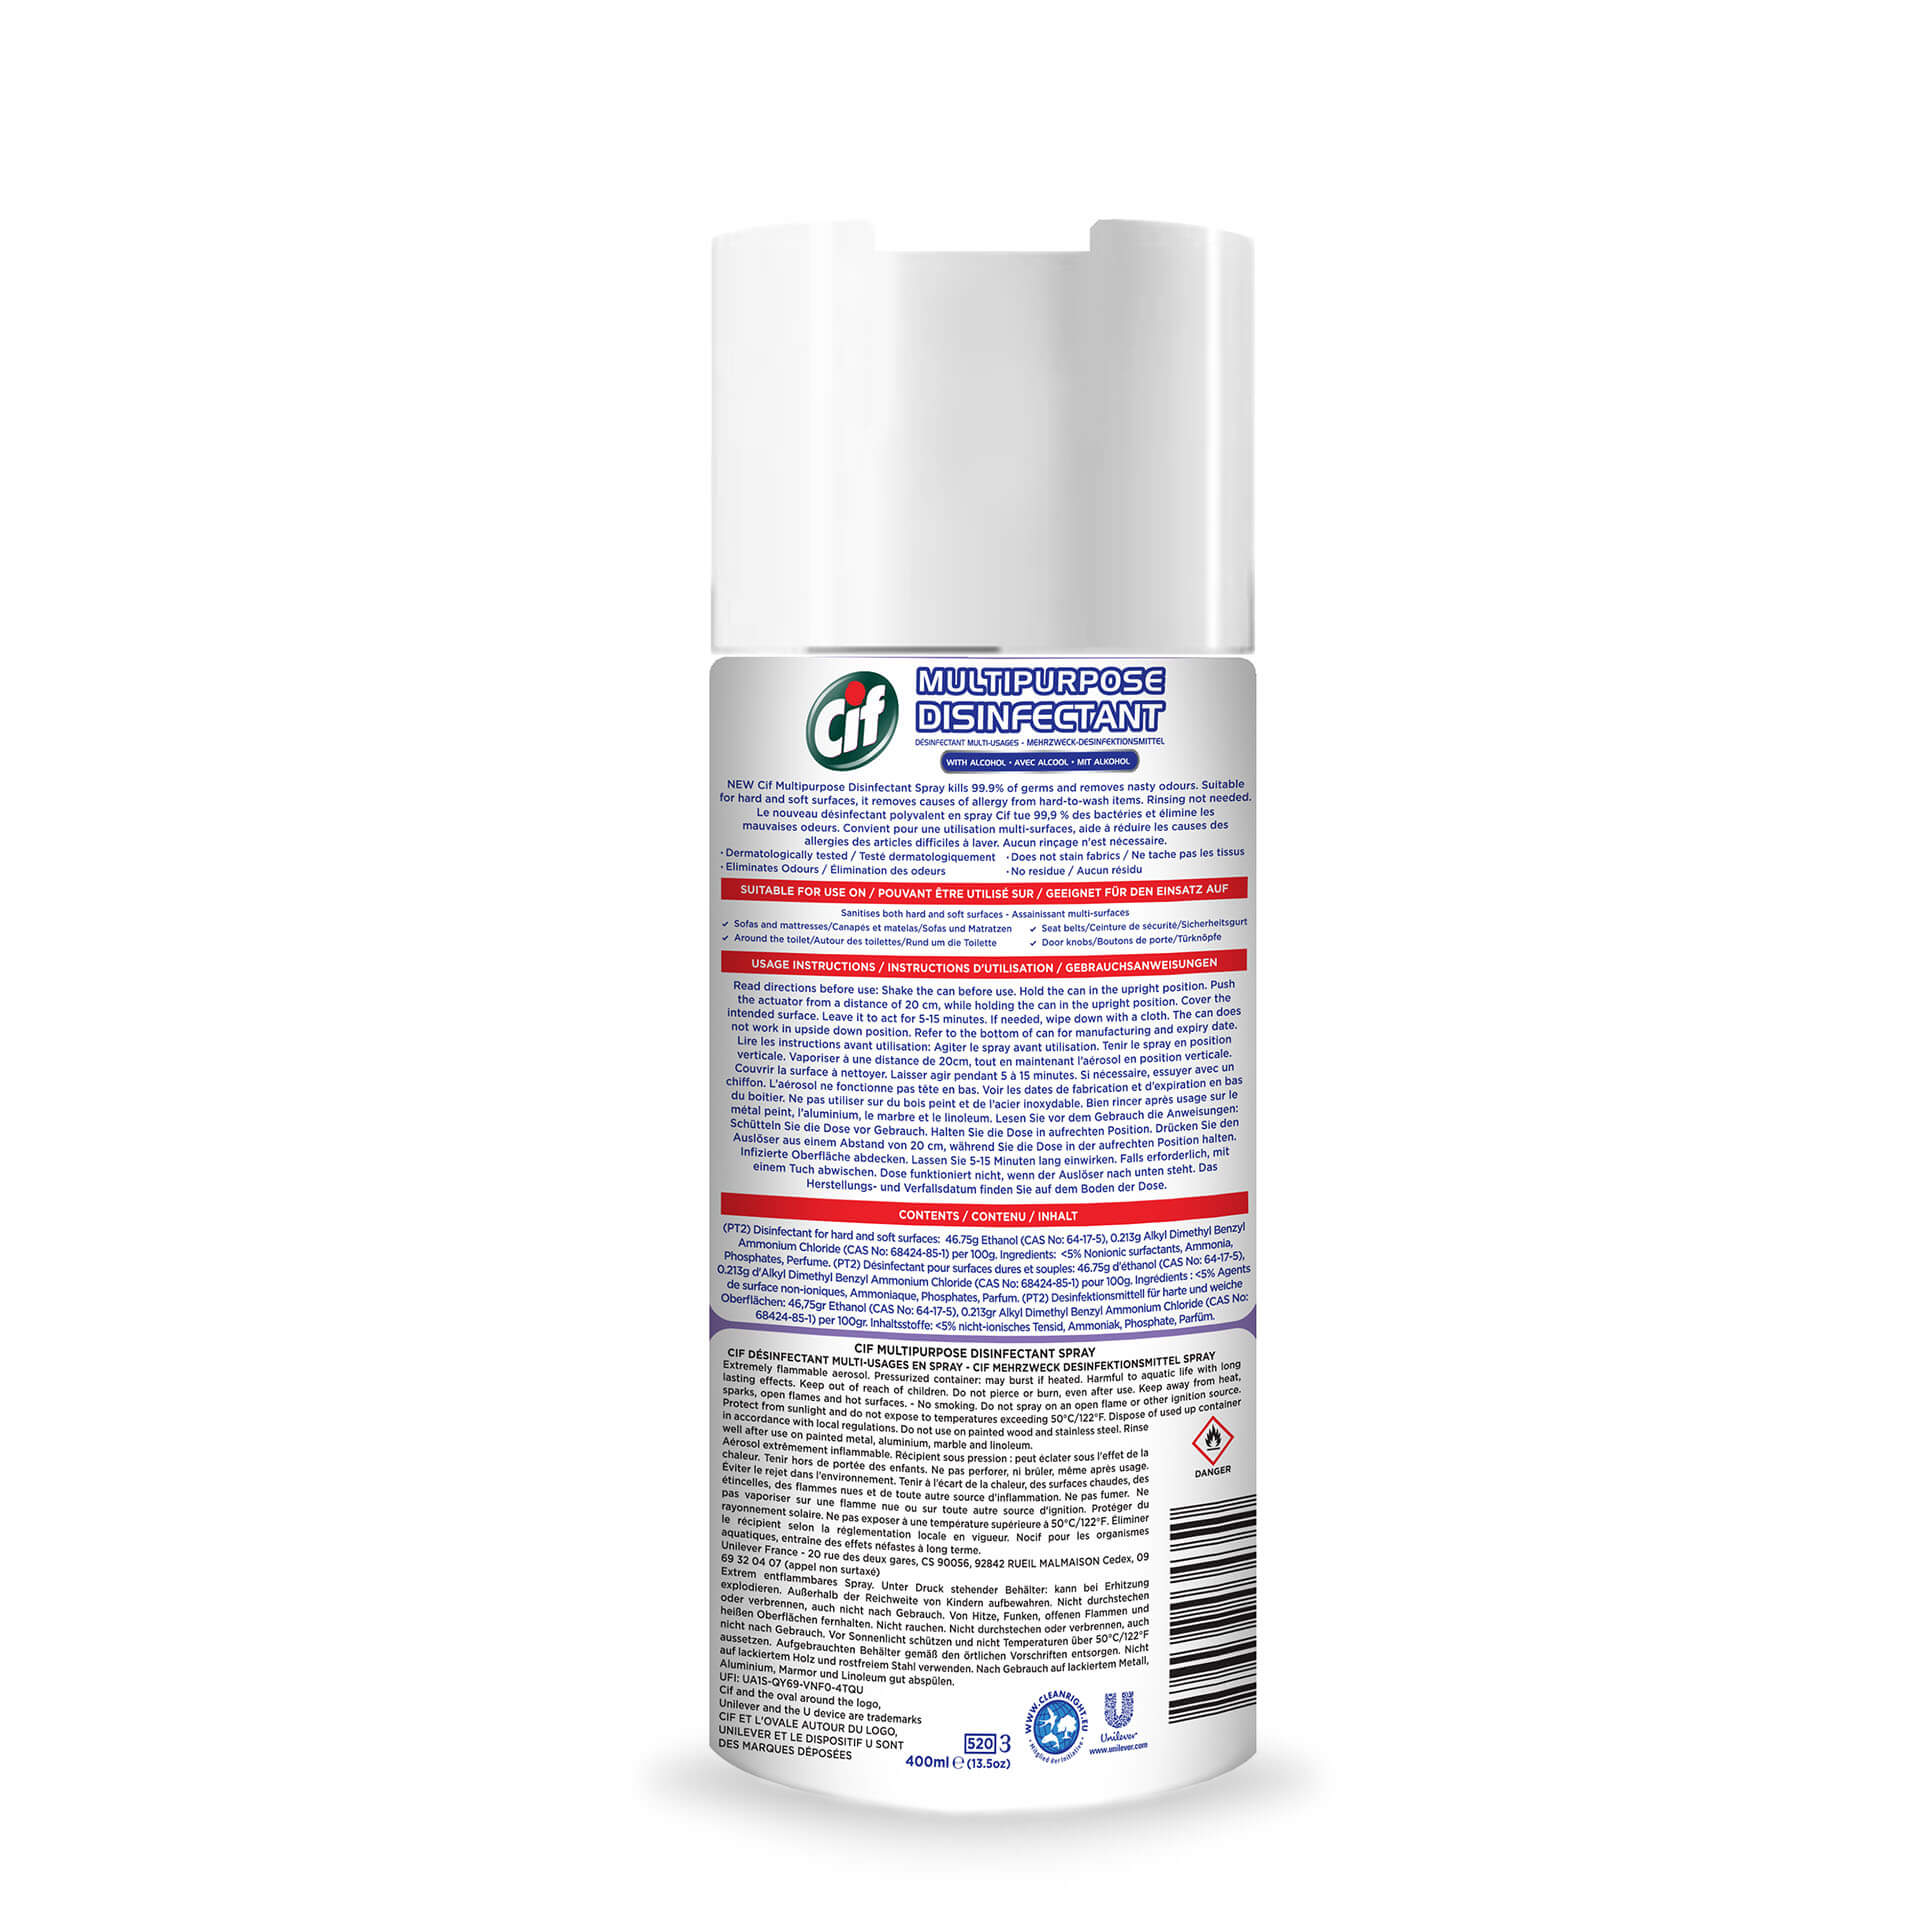 CIFMultipurpose Disinfectant Spray Wild Flowers 400ML,Alcohol and Disinfectant